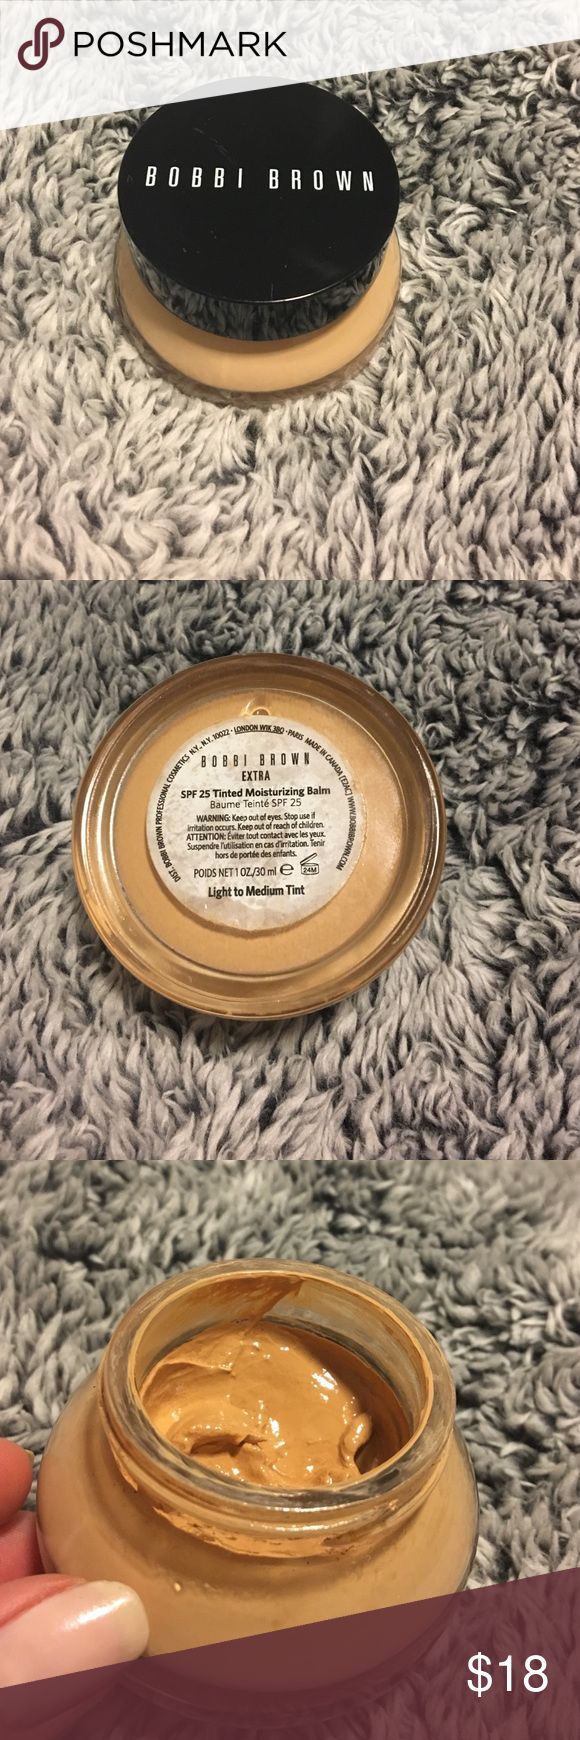 Bobbi brown spf 25 tinted moisturizing balm A lightweight foundation alternative for dry, dehydrated skin, this formula is ultra-rich and blends easily, giving skin a dewy look with light coverage. 1 oz./30ml.  80% full ! Bobbi Brown Other